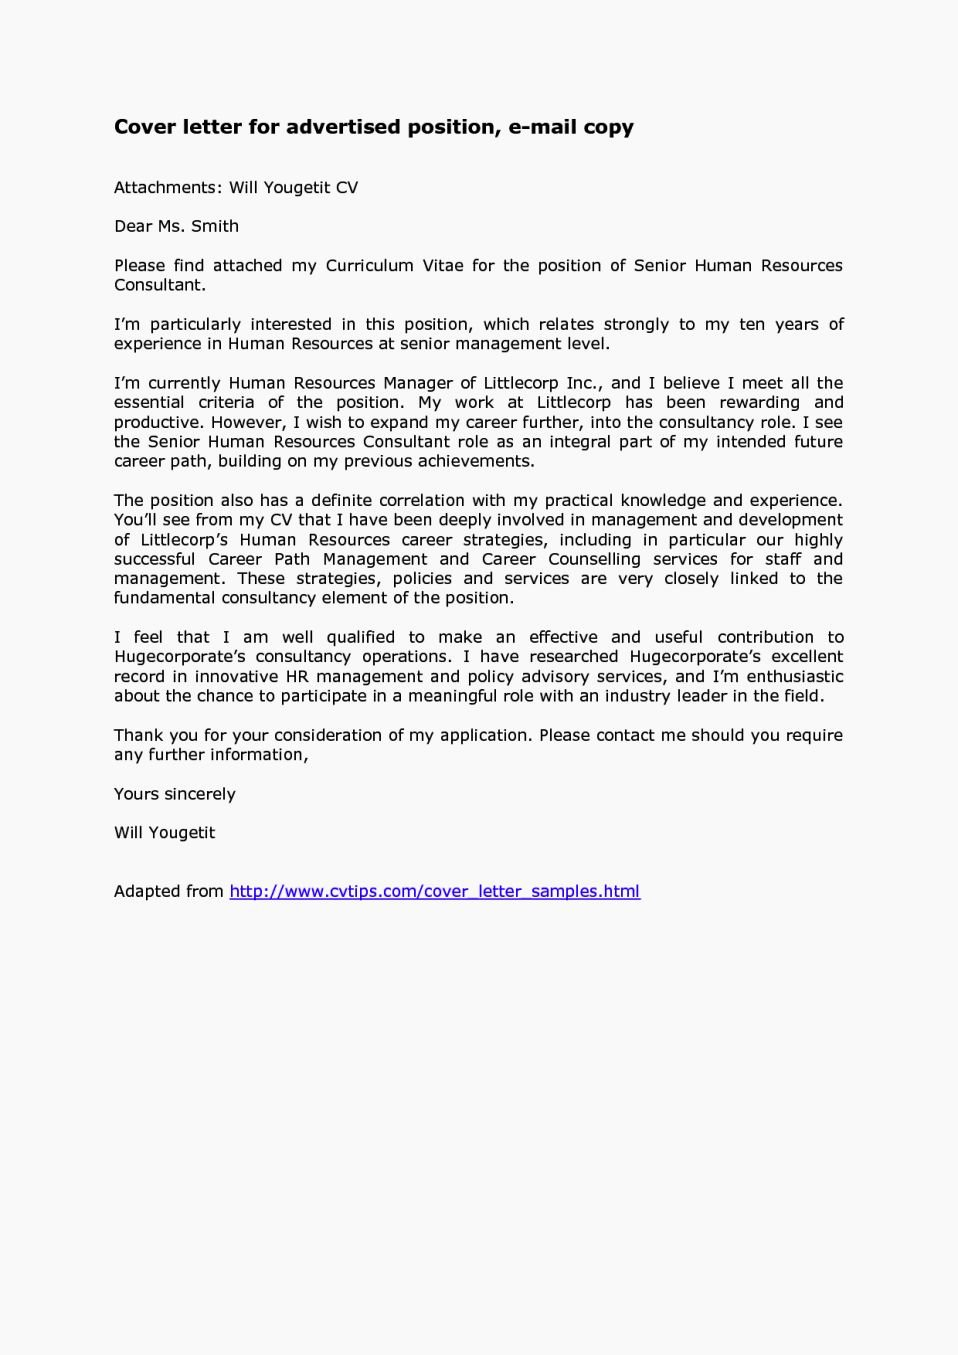 Emailed Cover Letter format Best Of Sample Email Message with attached Resume Talktomartyb